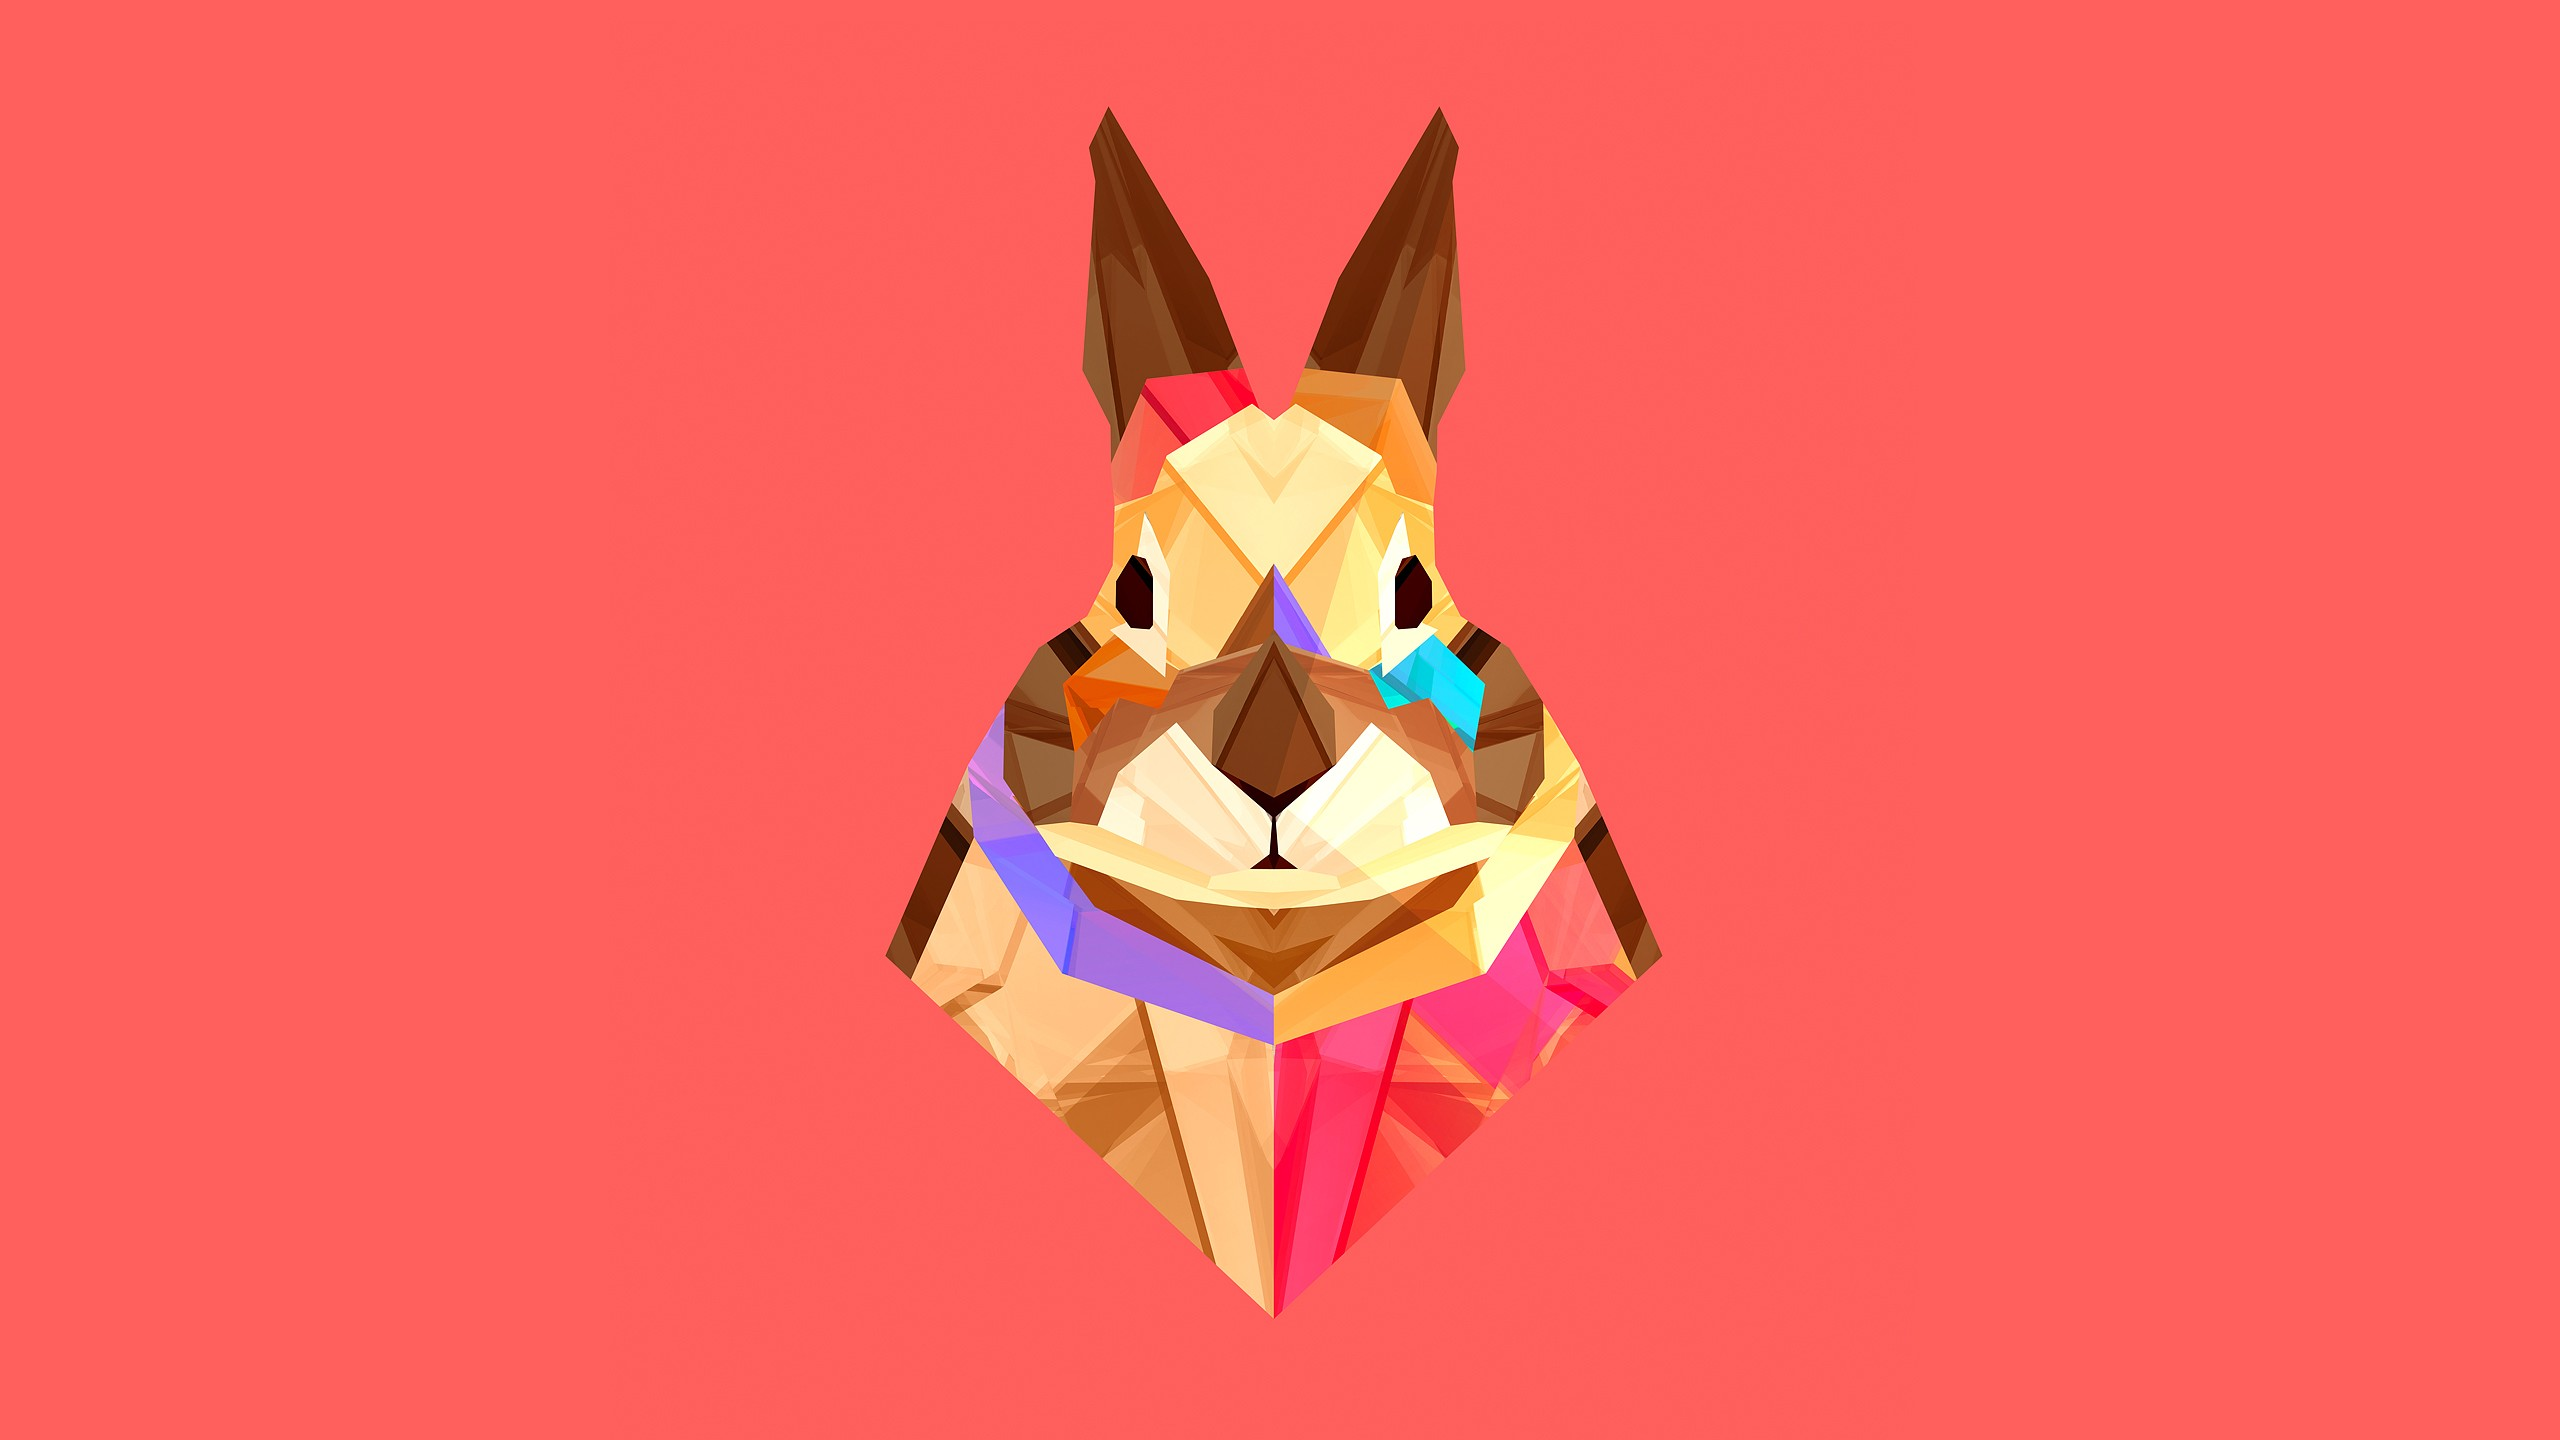 Facets Rabbits Animals Justin Maller Digital Art